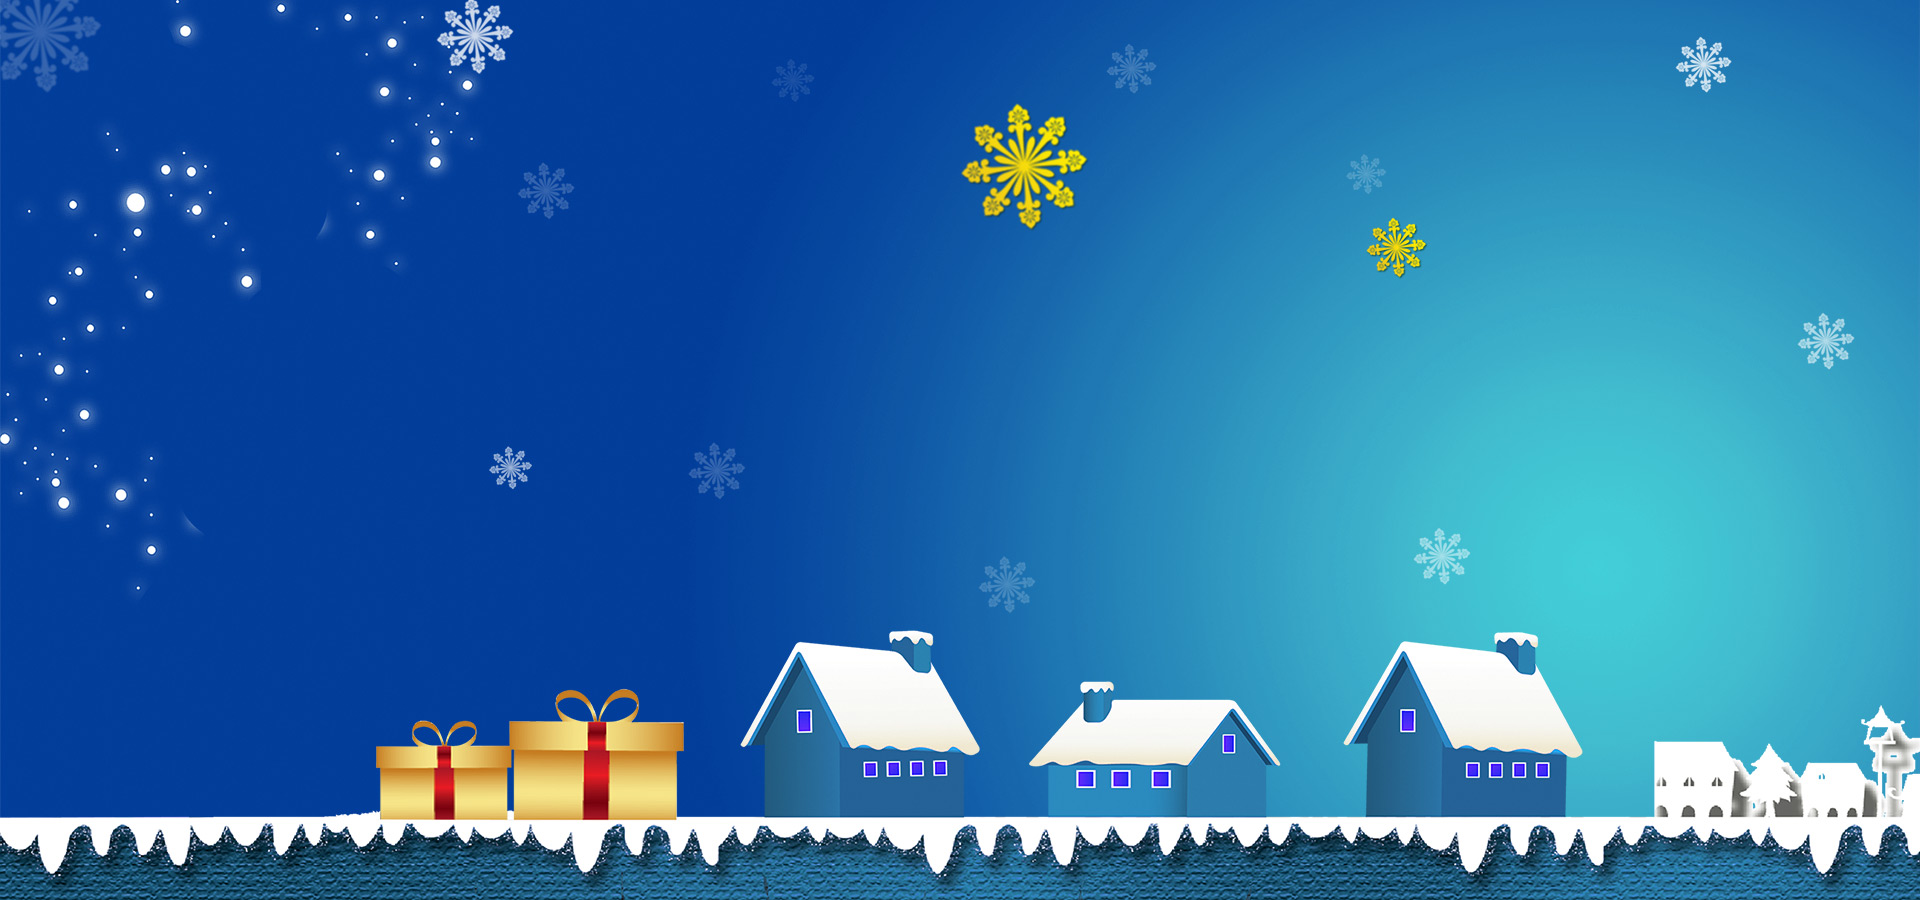 christmas promotion background  poster  christmas  promotional background image for free download